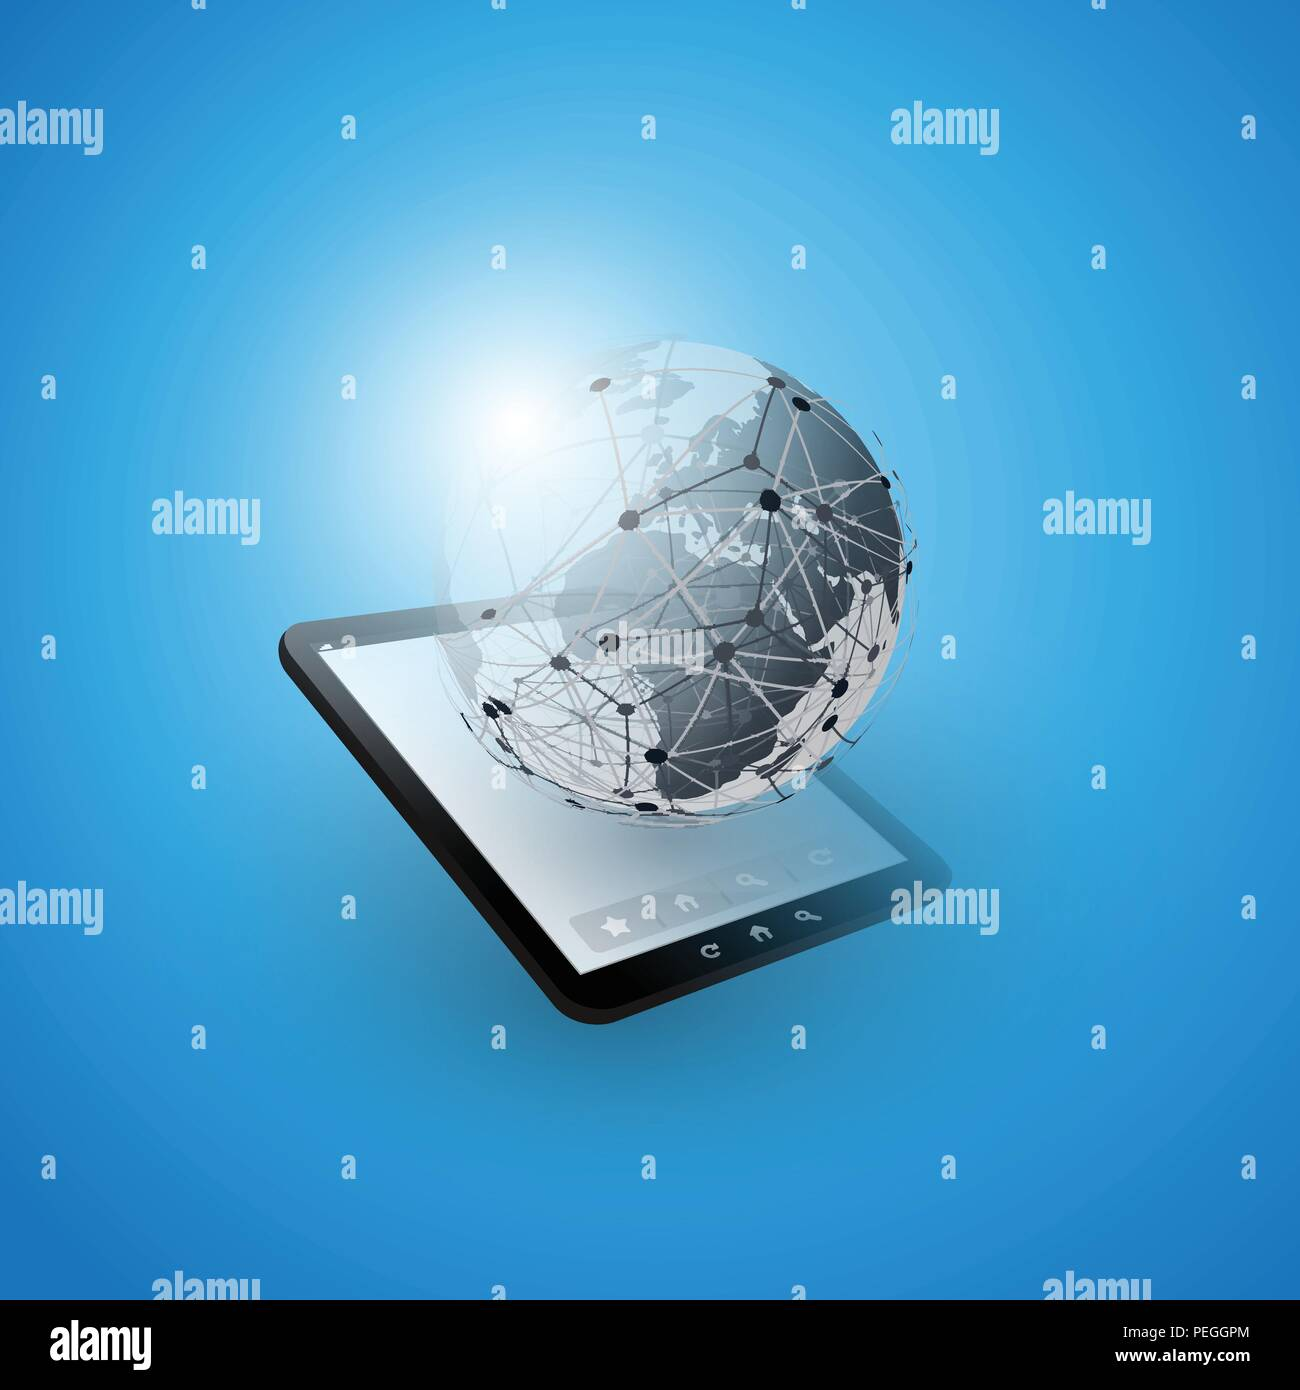 Cloud Computing Design Concept with Earth Globe and Tablet